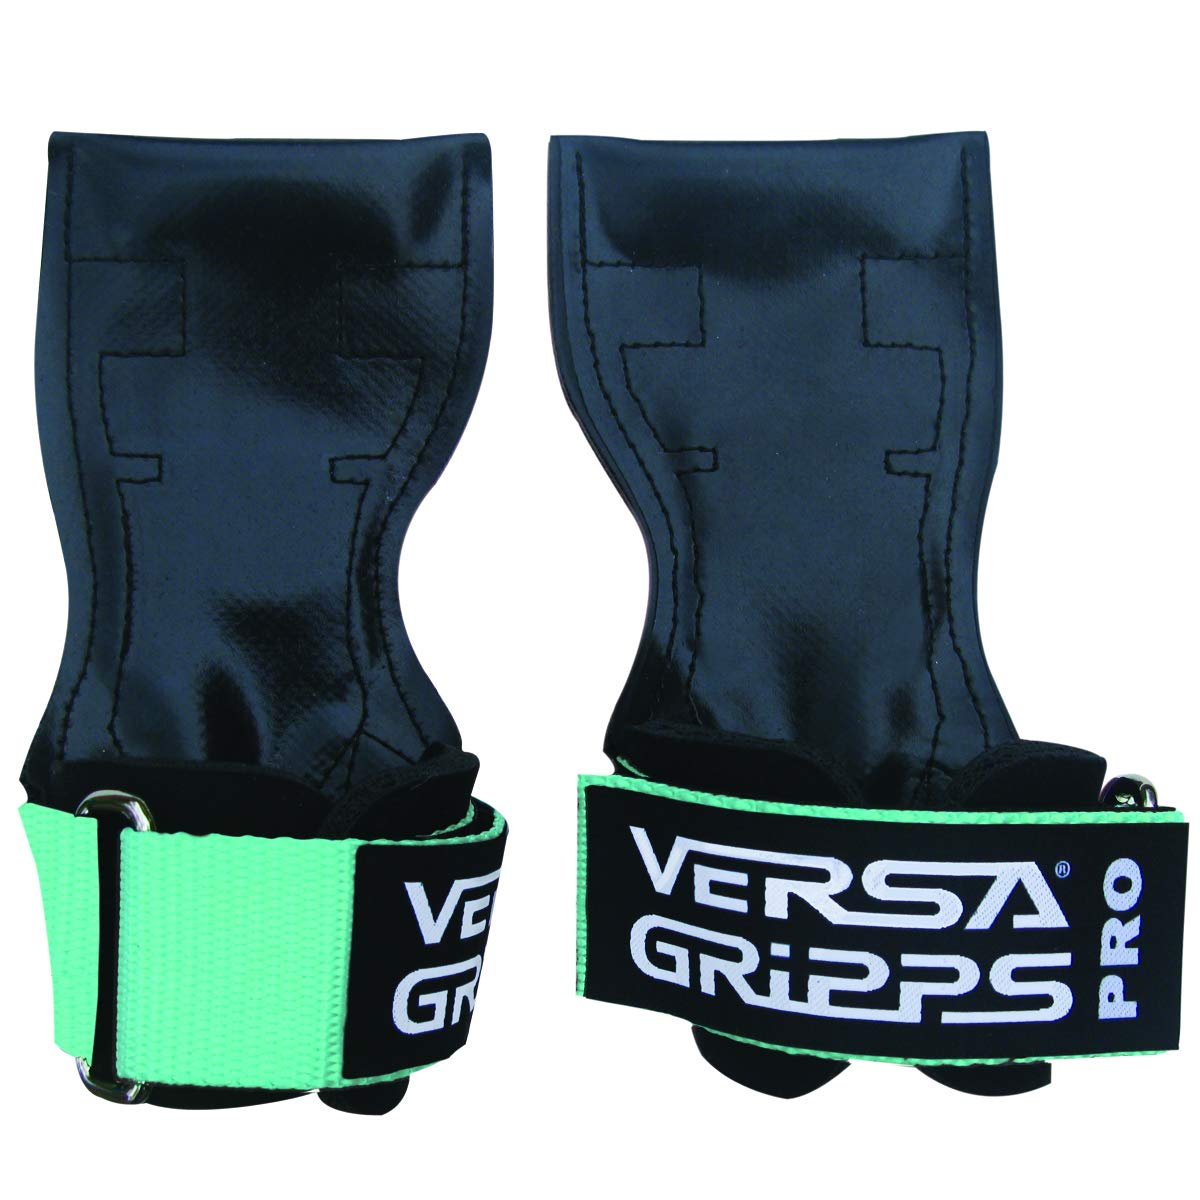 Versa Gripps PRO Authentic. The Best Training Accessory in The World. Made in The USA (Mint, XSmall)